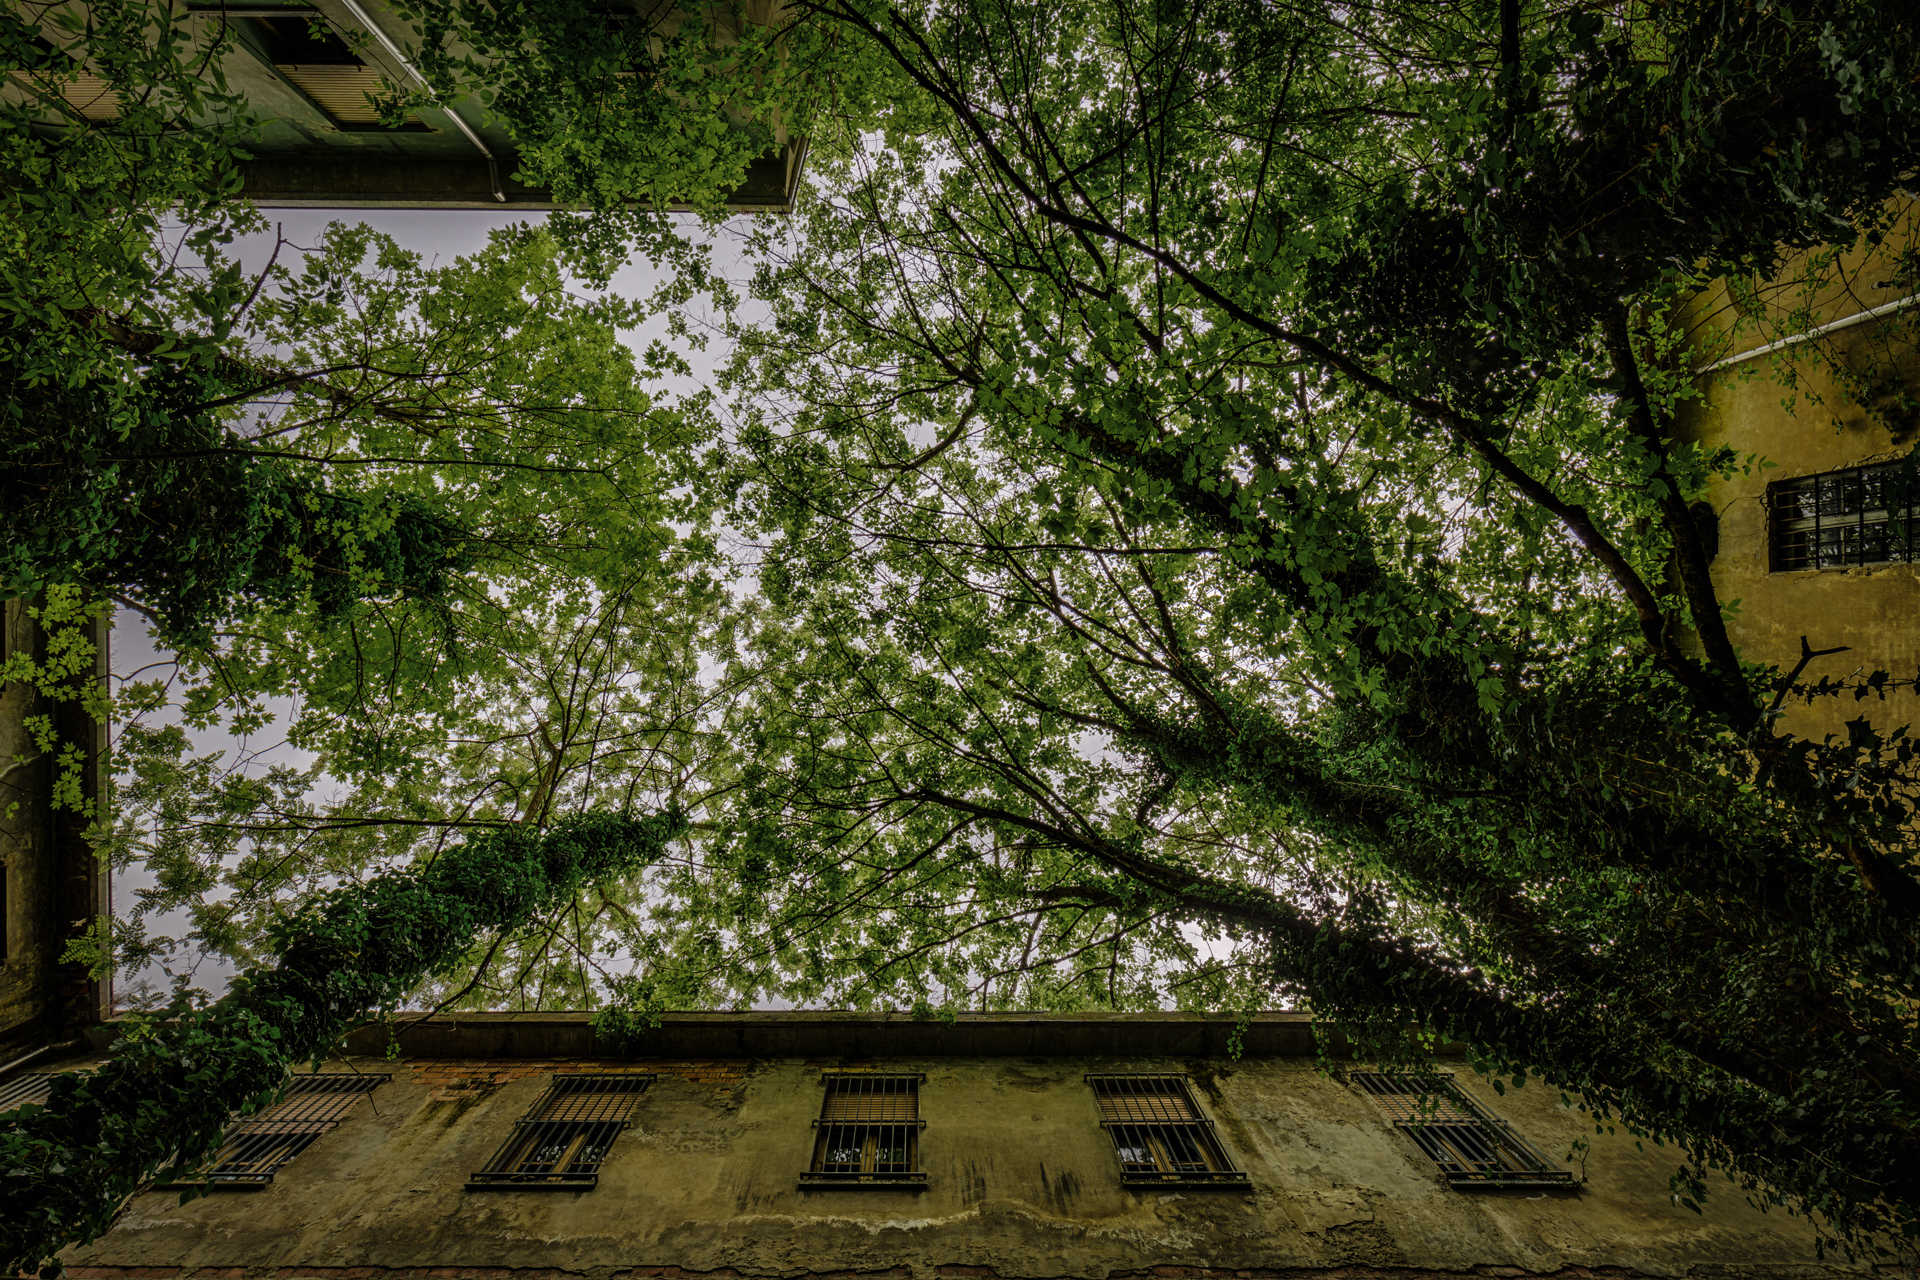 Urban Exploration - Manicomio Di Anime - Green Courtyard